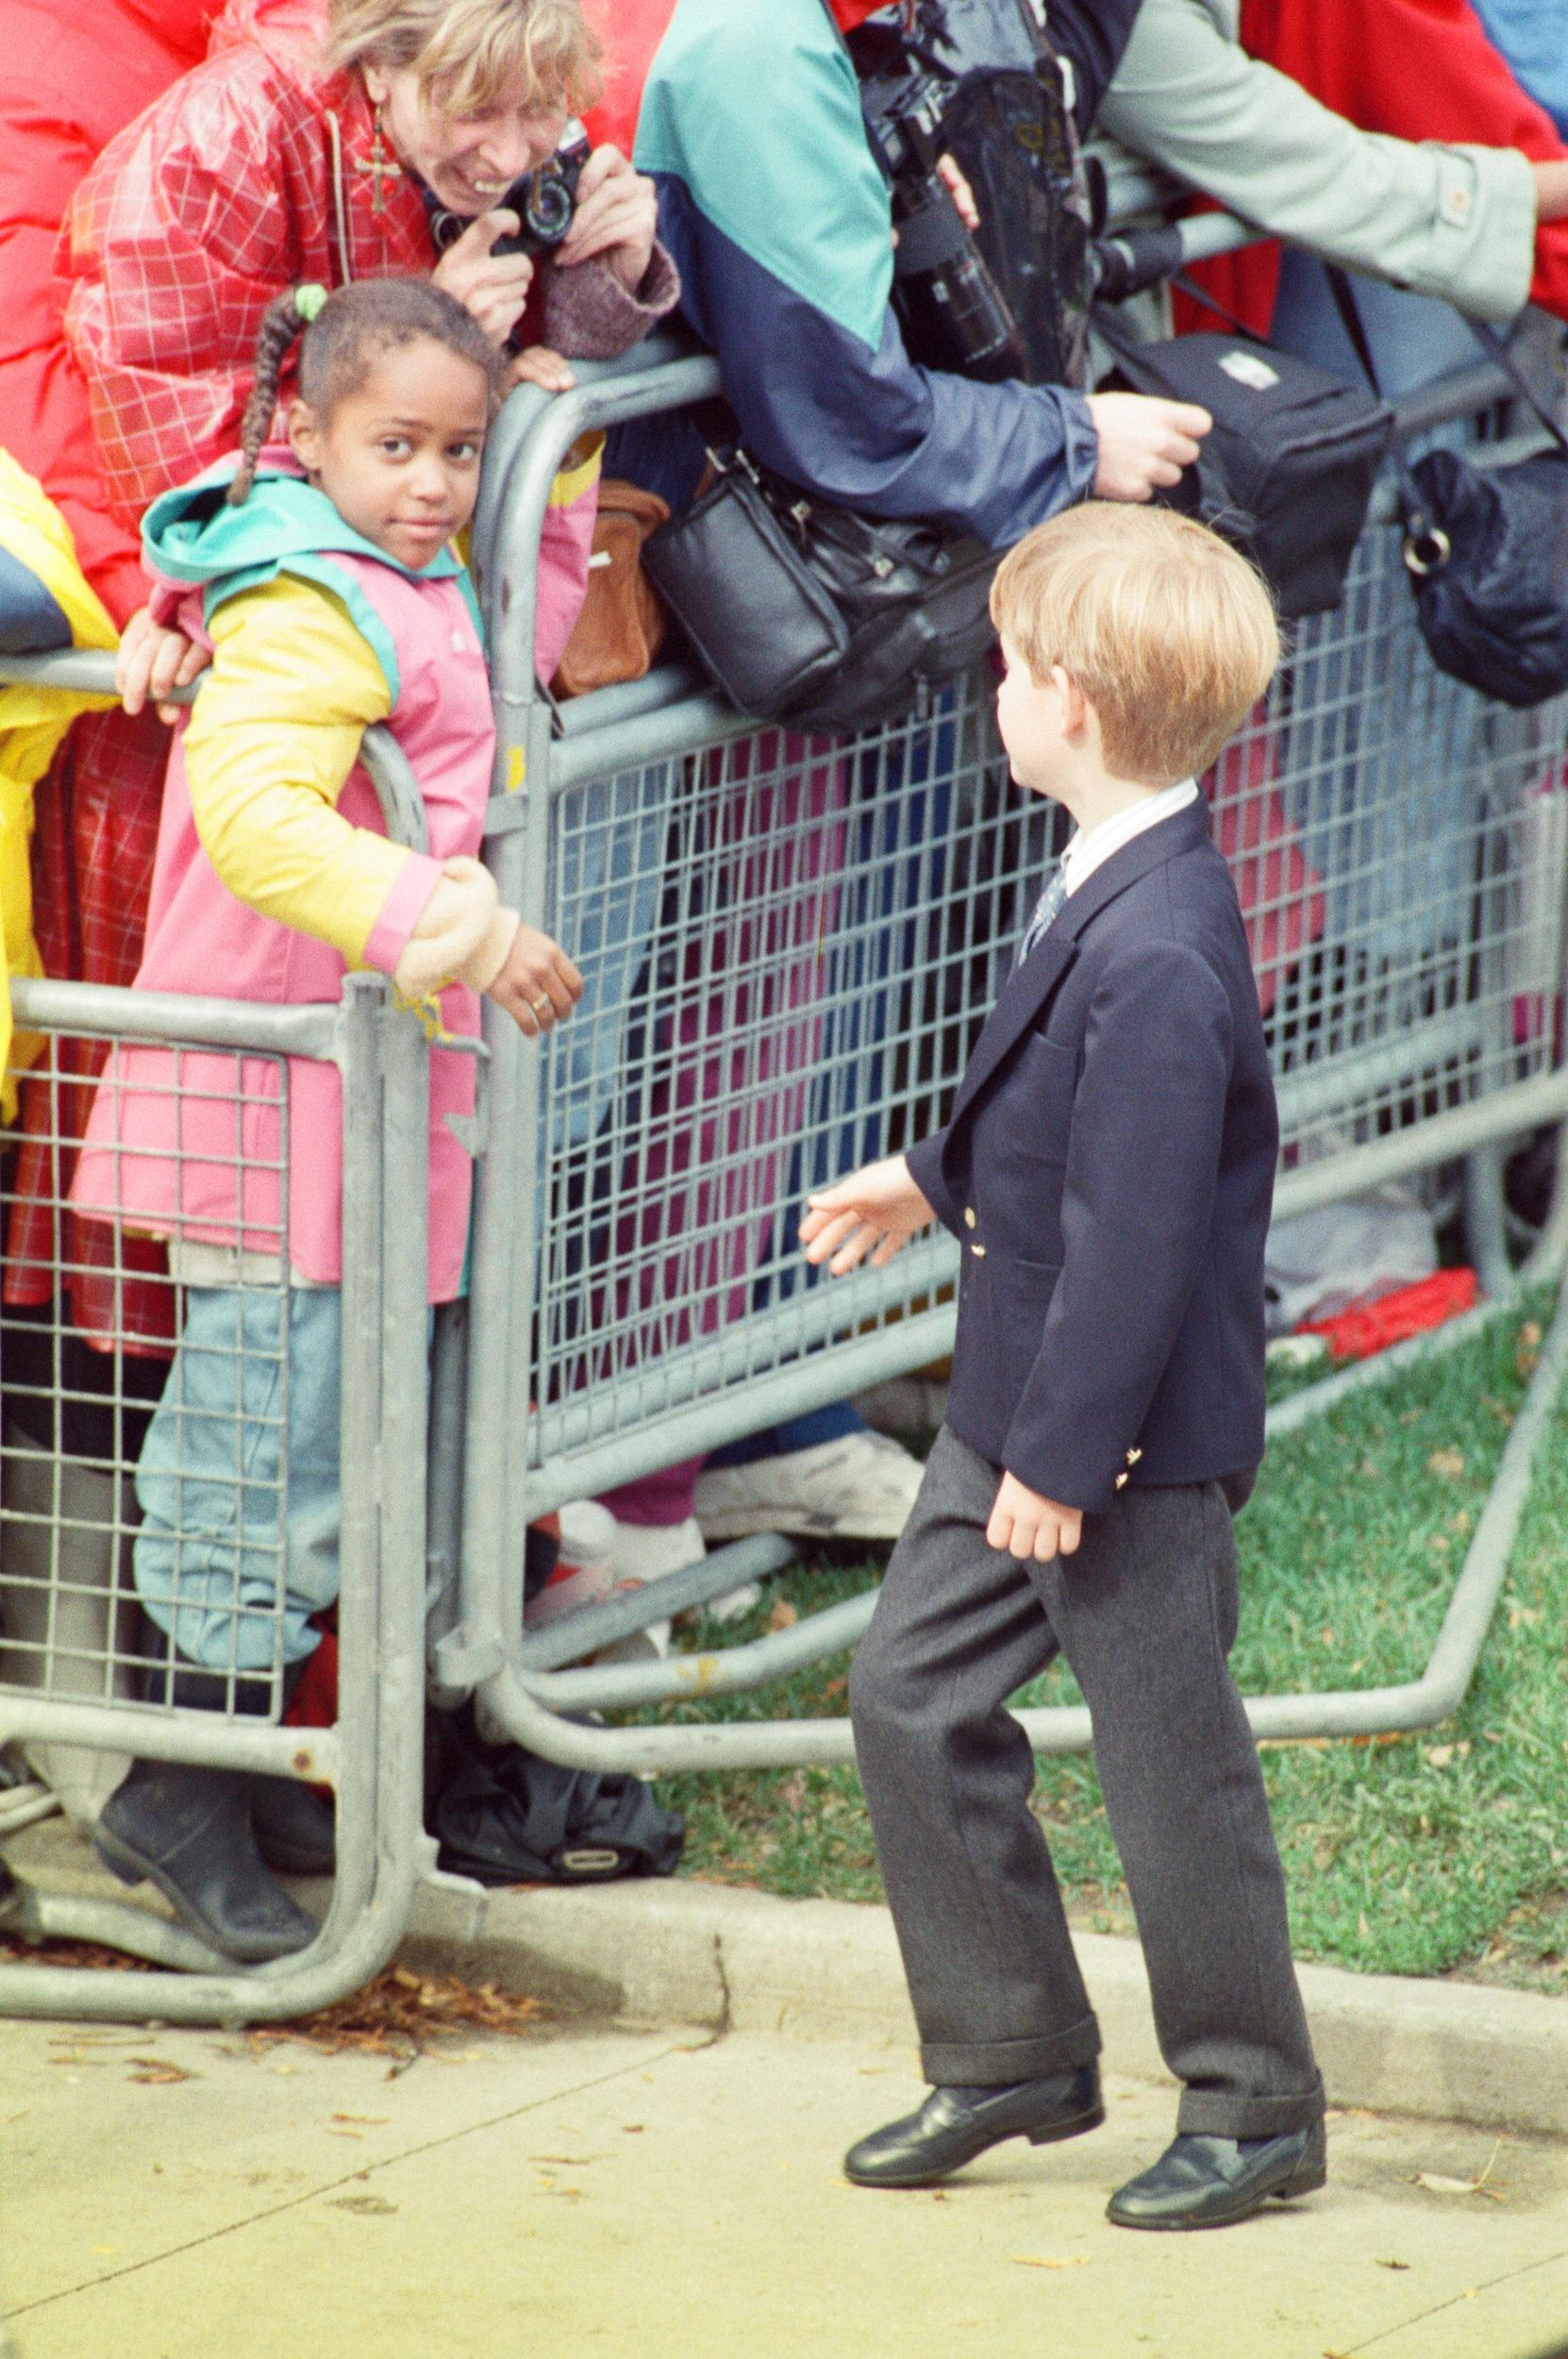 Princess Diana, Princess of Wales, with her sons William and Harry on a walkabout after church service at St. James Cathedral in Toronto, Canada. Picture shows Prince Harry talking to a young lady who has come out to see the Royal family. Picture taken 27th October 27, 1991. (Photo by Kent Gavin/Mirrorpix/Getty Images)